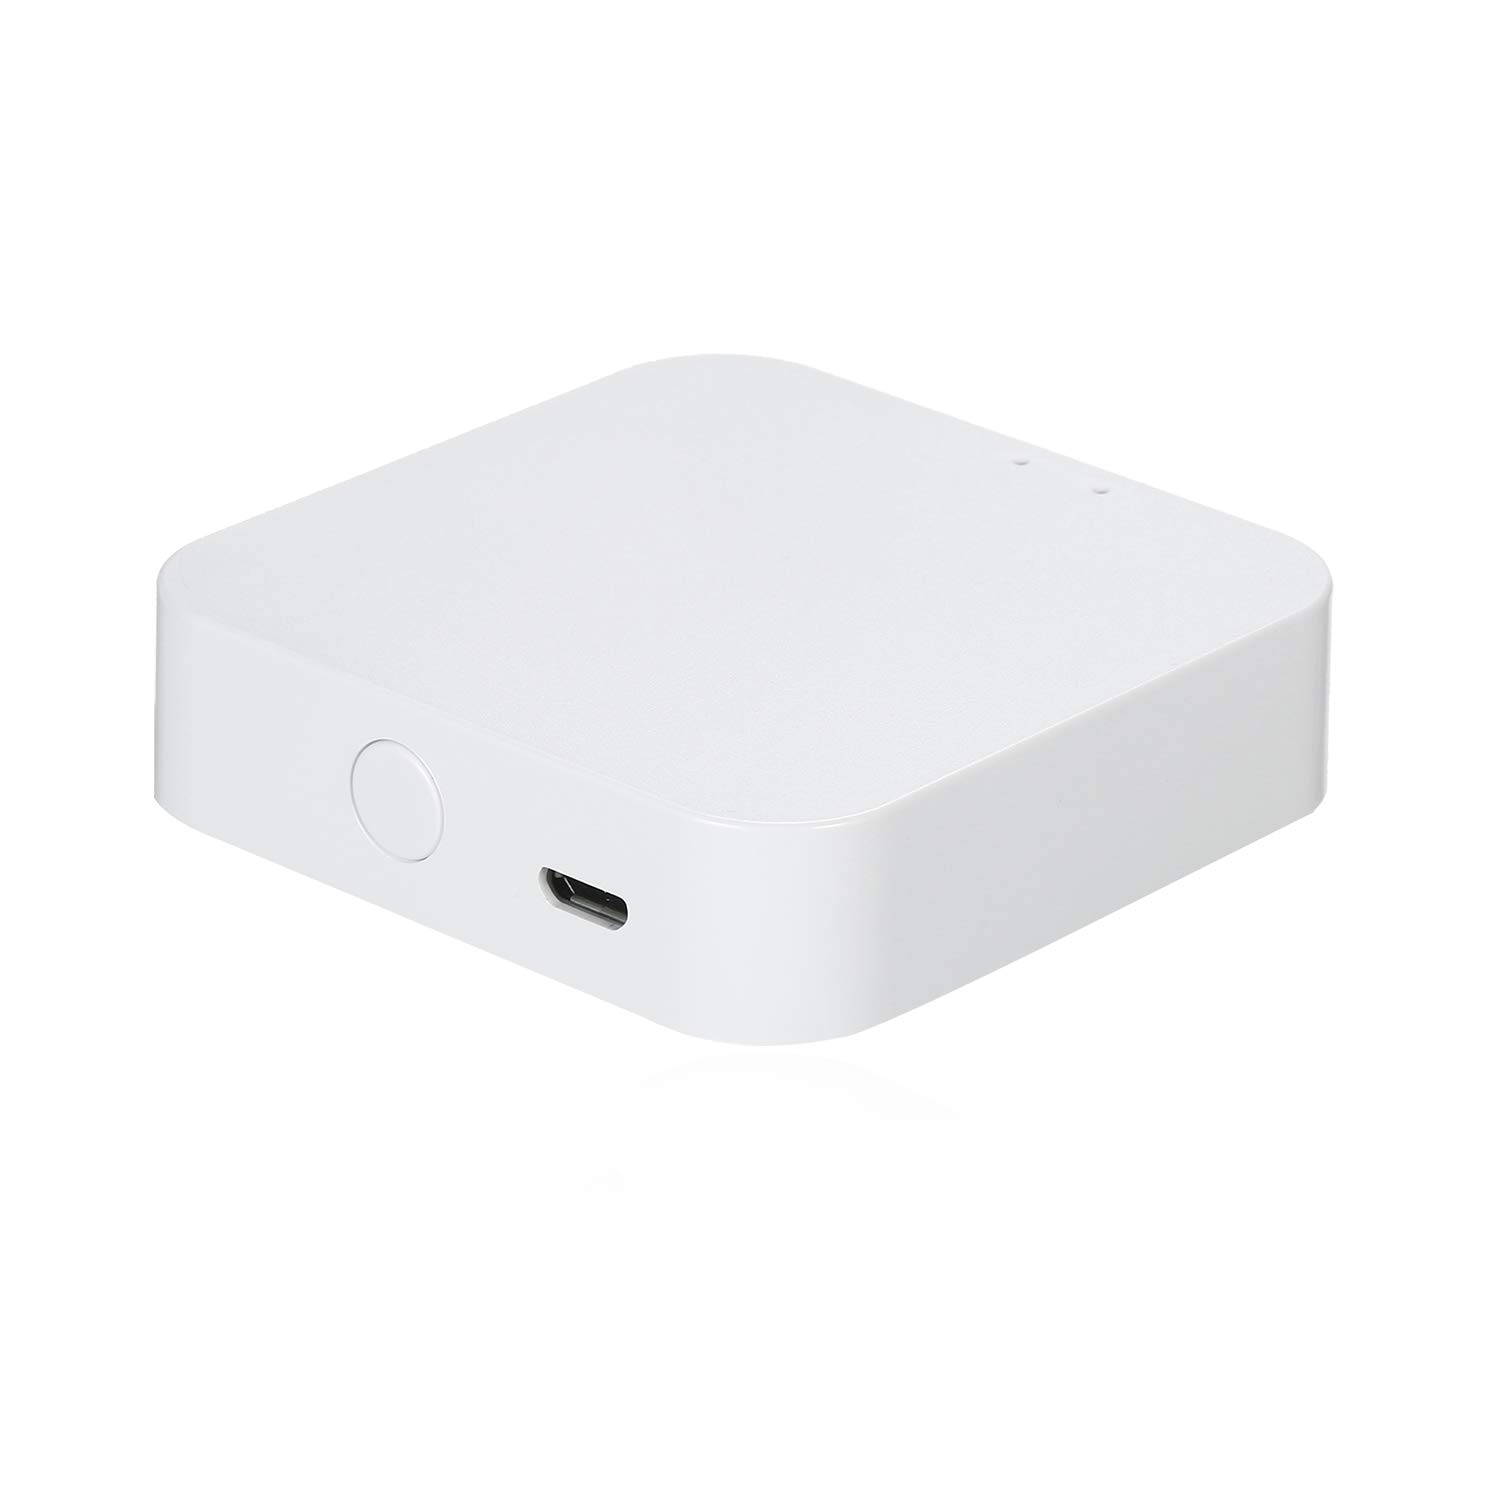 Buy TYGWZW-01N Wirless ZigBee Dual Channel Receiver for SEA801-ZIGBEE Smart  Thermostats Multi-Room Control Smart Radiator Thermostat Gateway Wireless  Remote Control by Tuya App Smart Home Security System Online at Low Prices  in